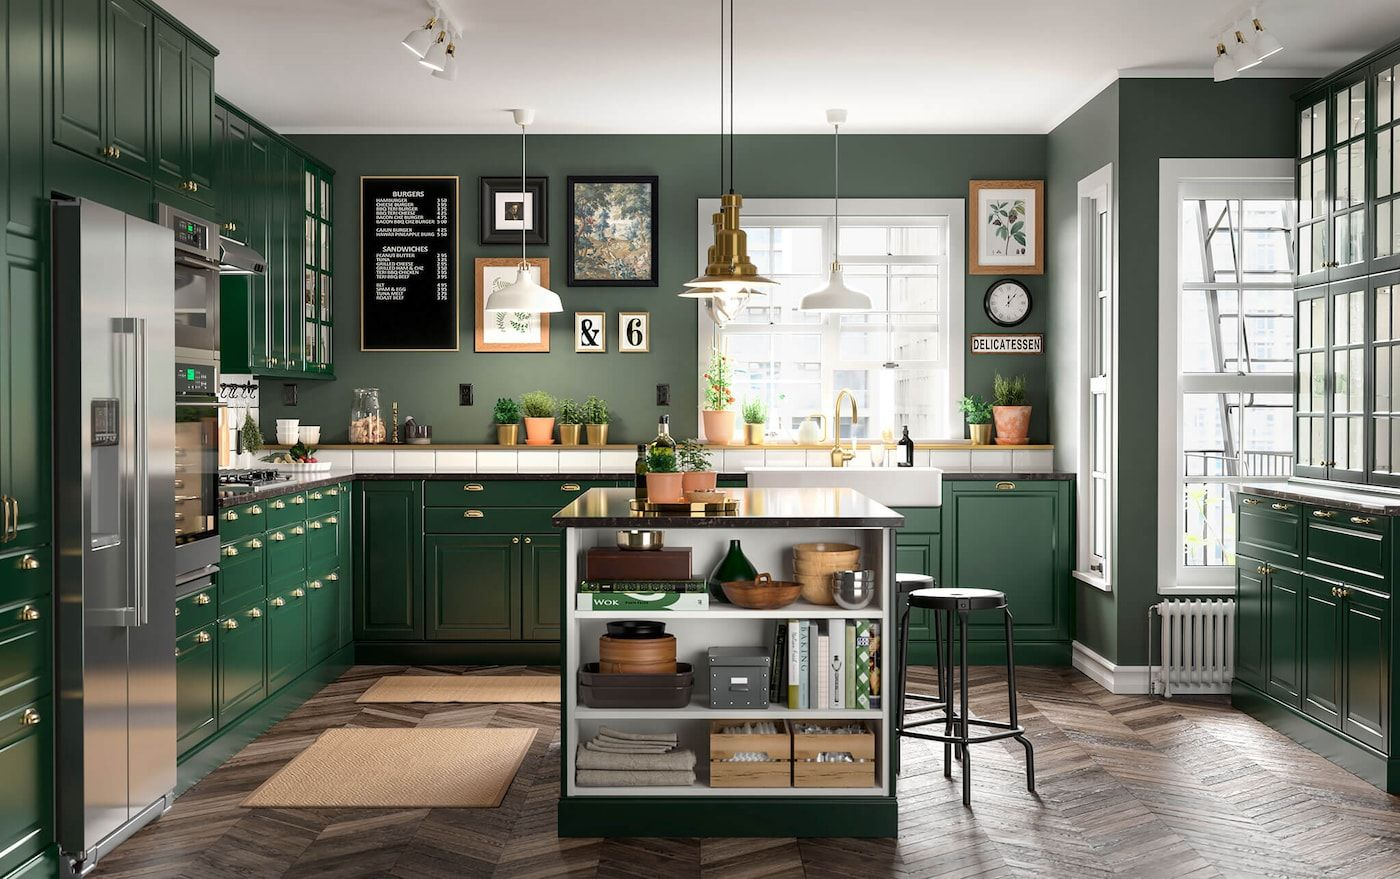 Ikea Kitchen Cabinets Ranked In Jd Power Newsroom Kitchen Plans Ikea Kitchen Cabinets Green Kitchen Cabinets Ikea com kitchen cabinets